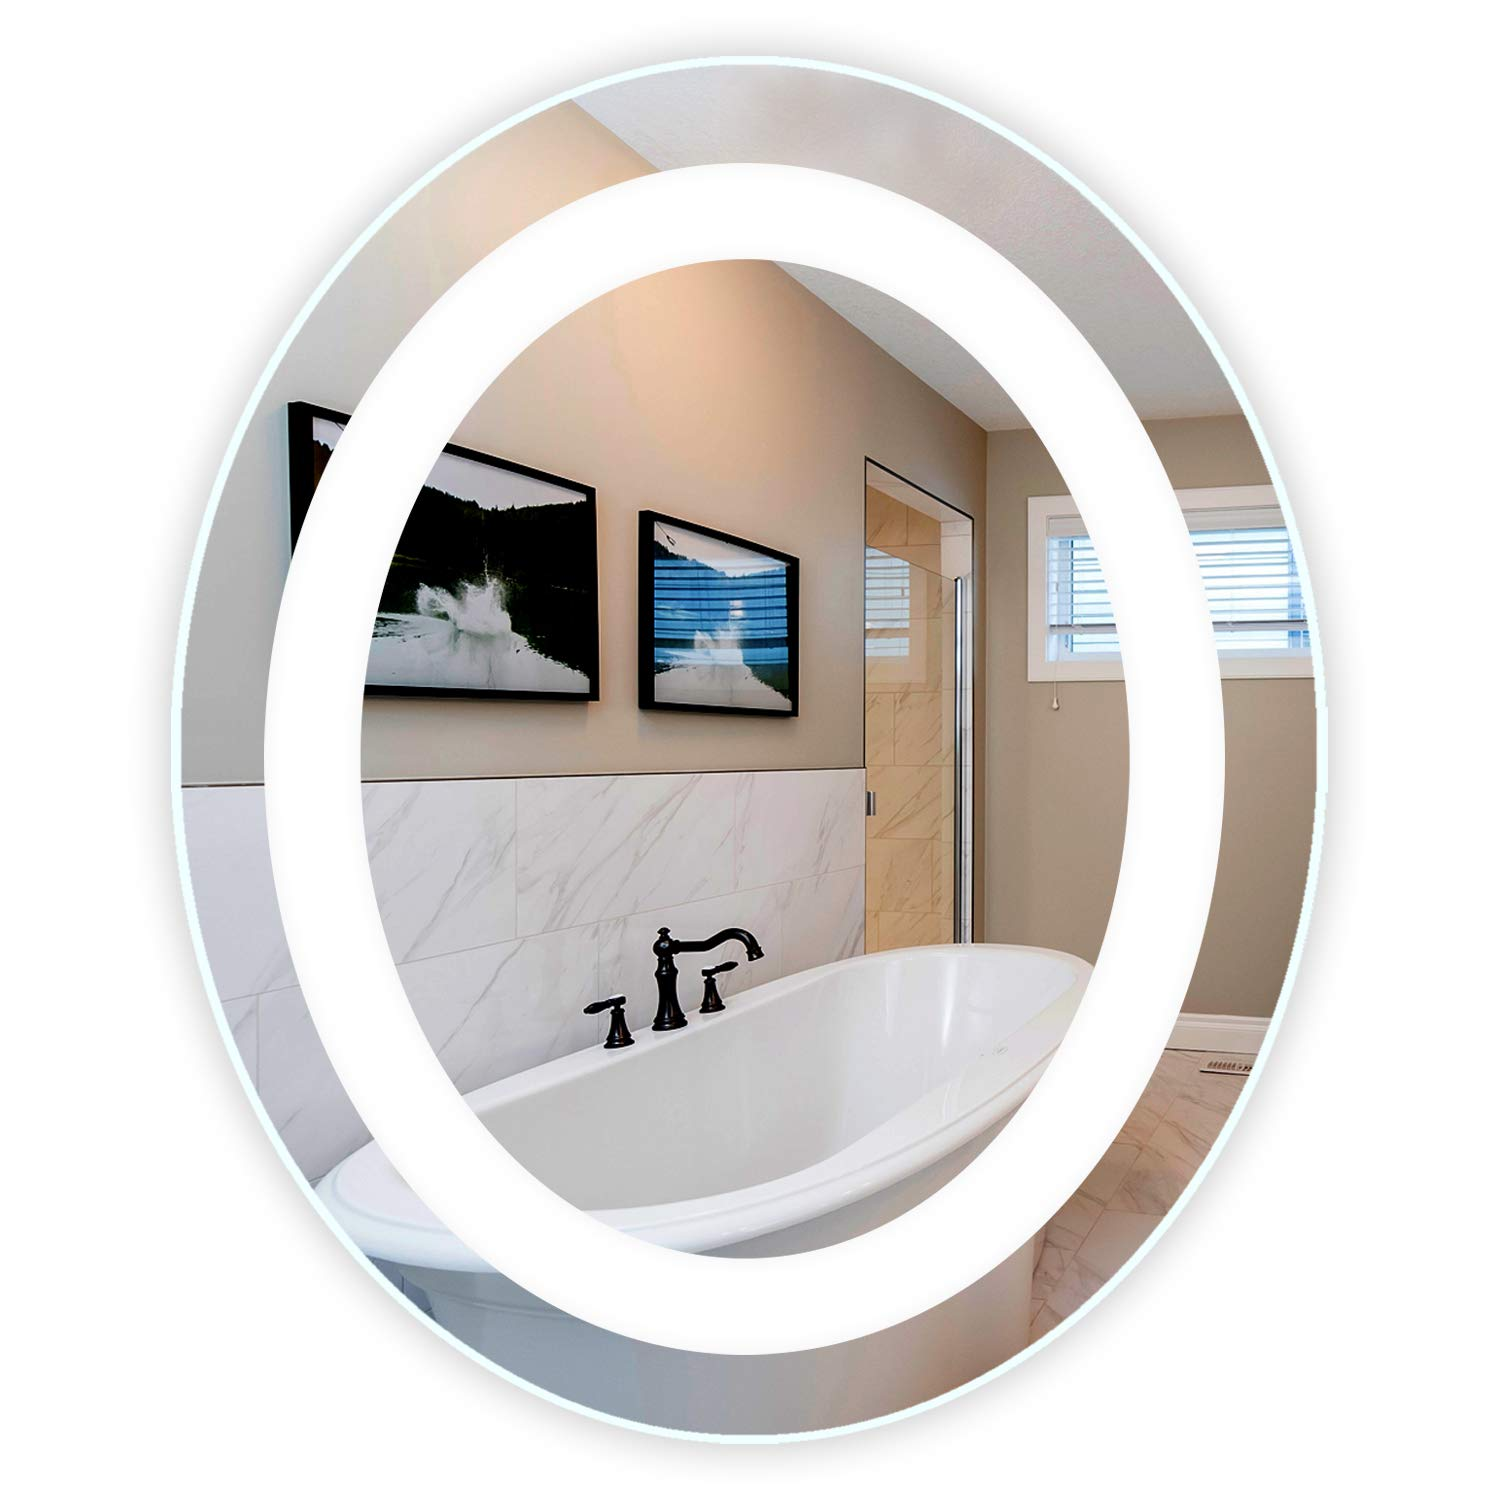 LED Front-Lighted Bathroom Vanity Mirror: 30'' Wide x 36'' Tall - Commercial Grade - Oval - Wall-Mounted